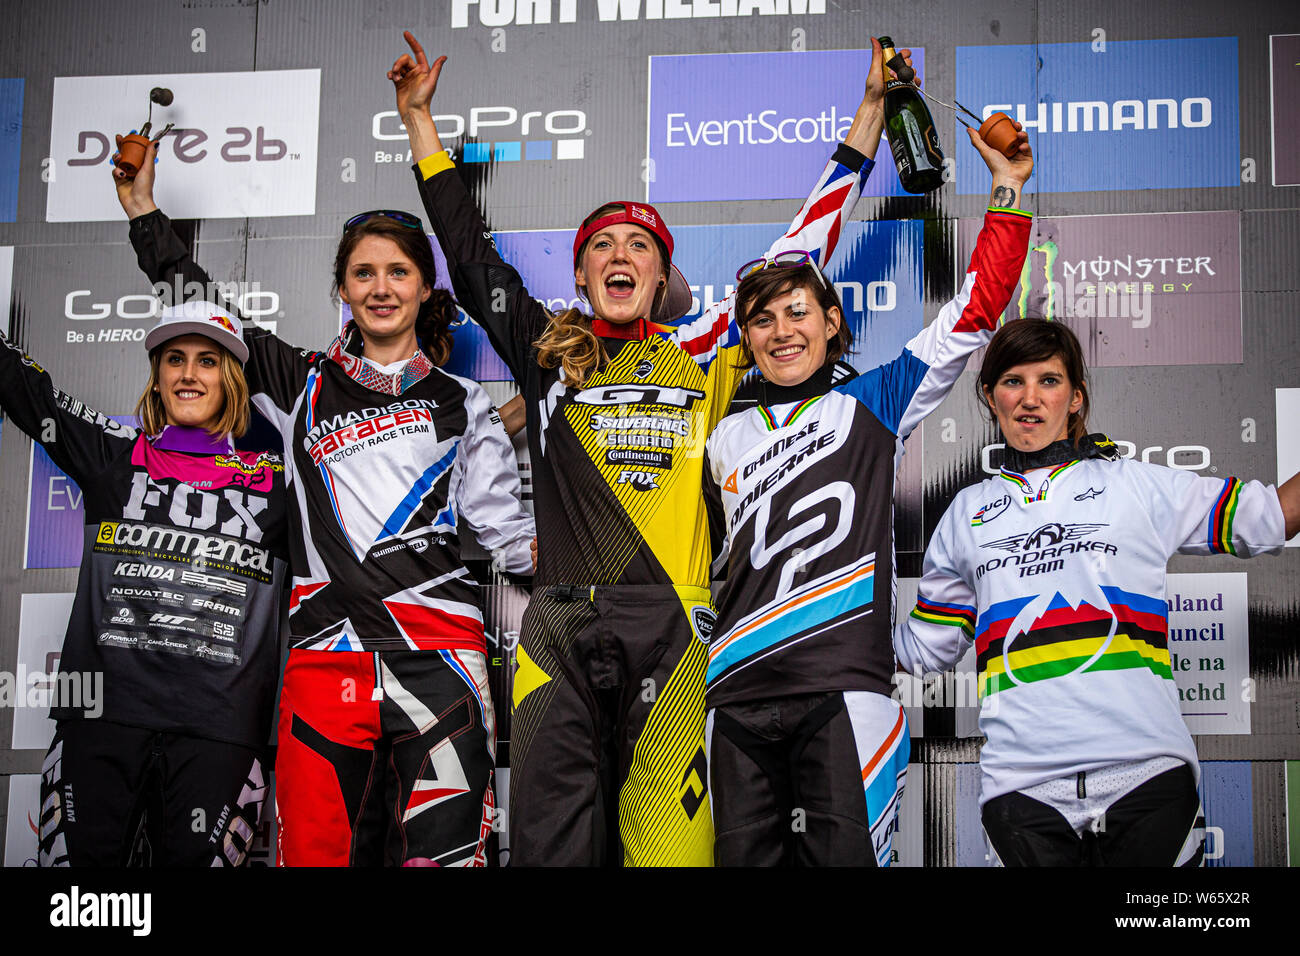 JUNE 9, 2013 - FORT WILLIAM, SCOTLAND  UCI MTB DH World Cup